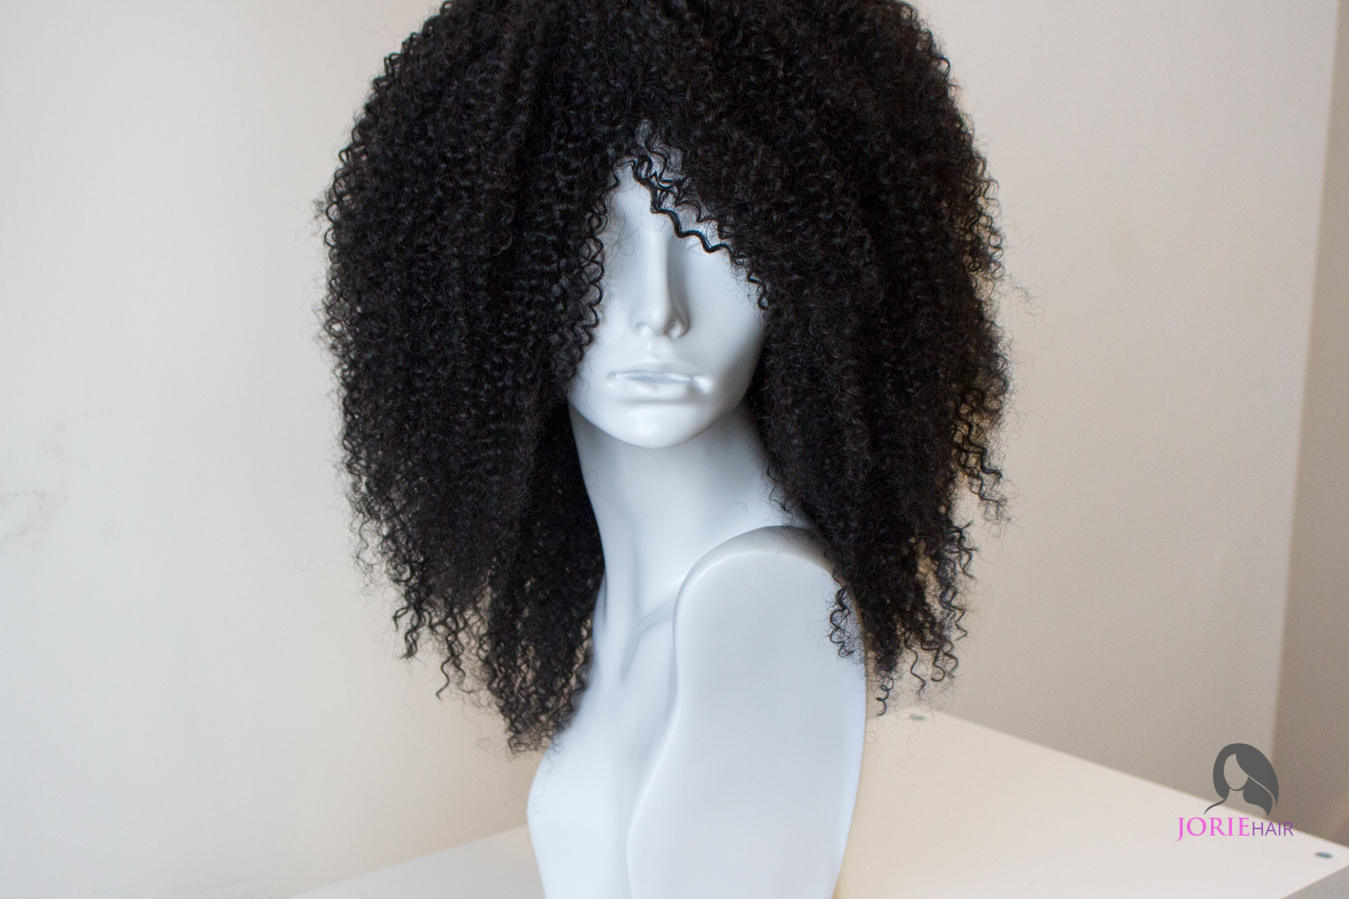 Weave How To Wear Our Kinky Curly Hair Jorie Hair Jorie Hair